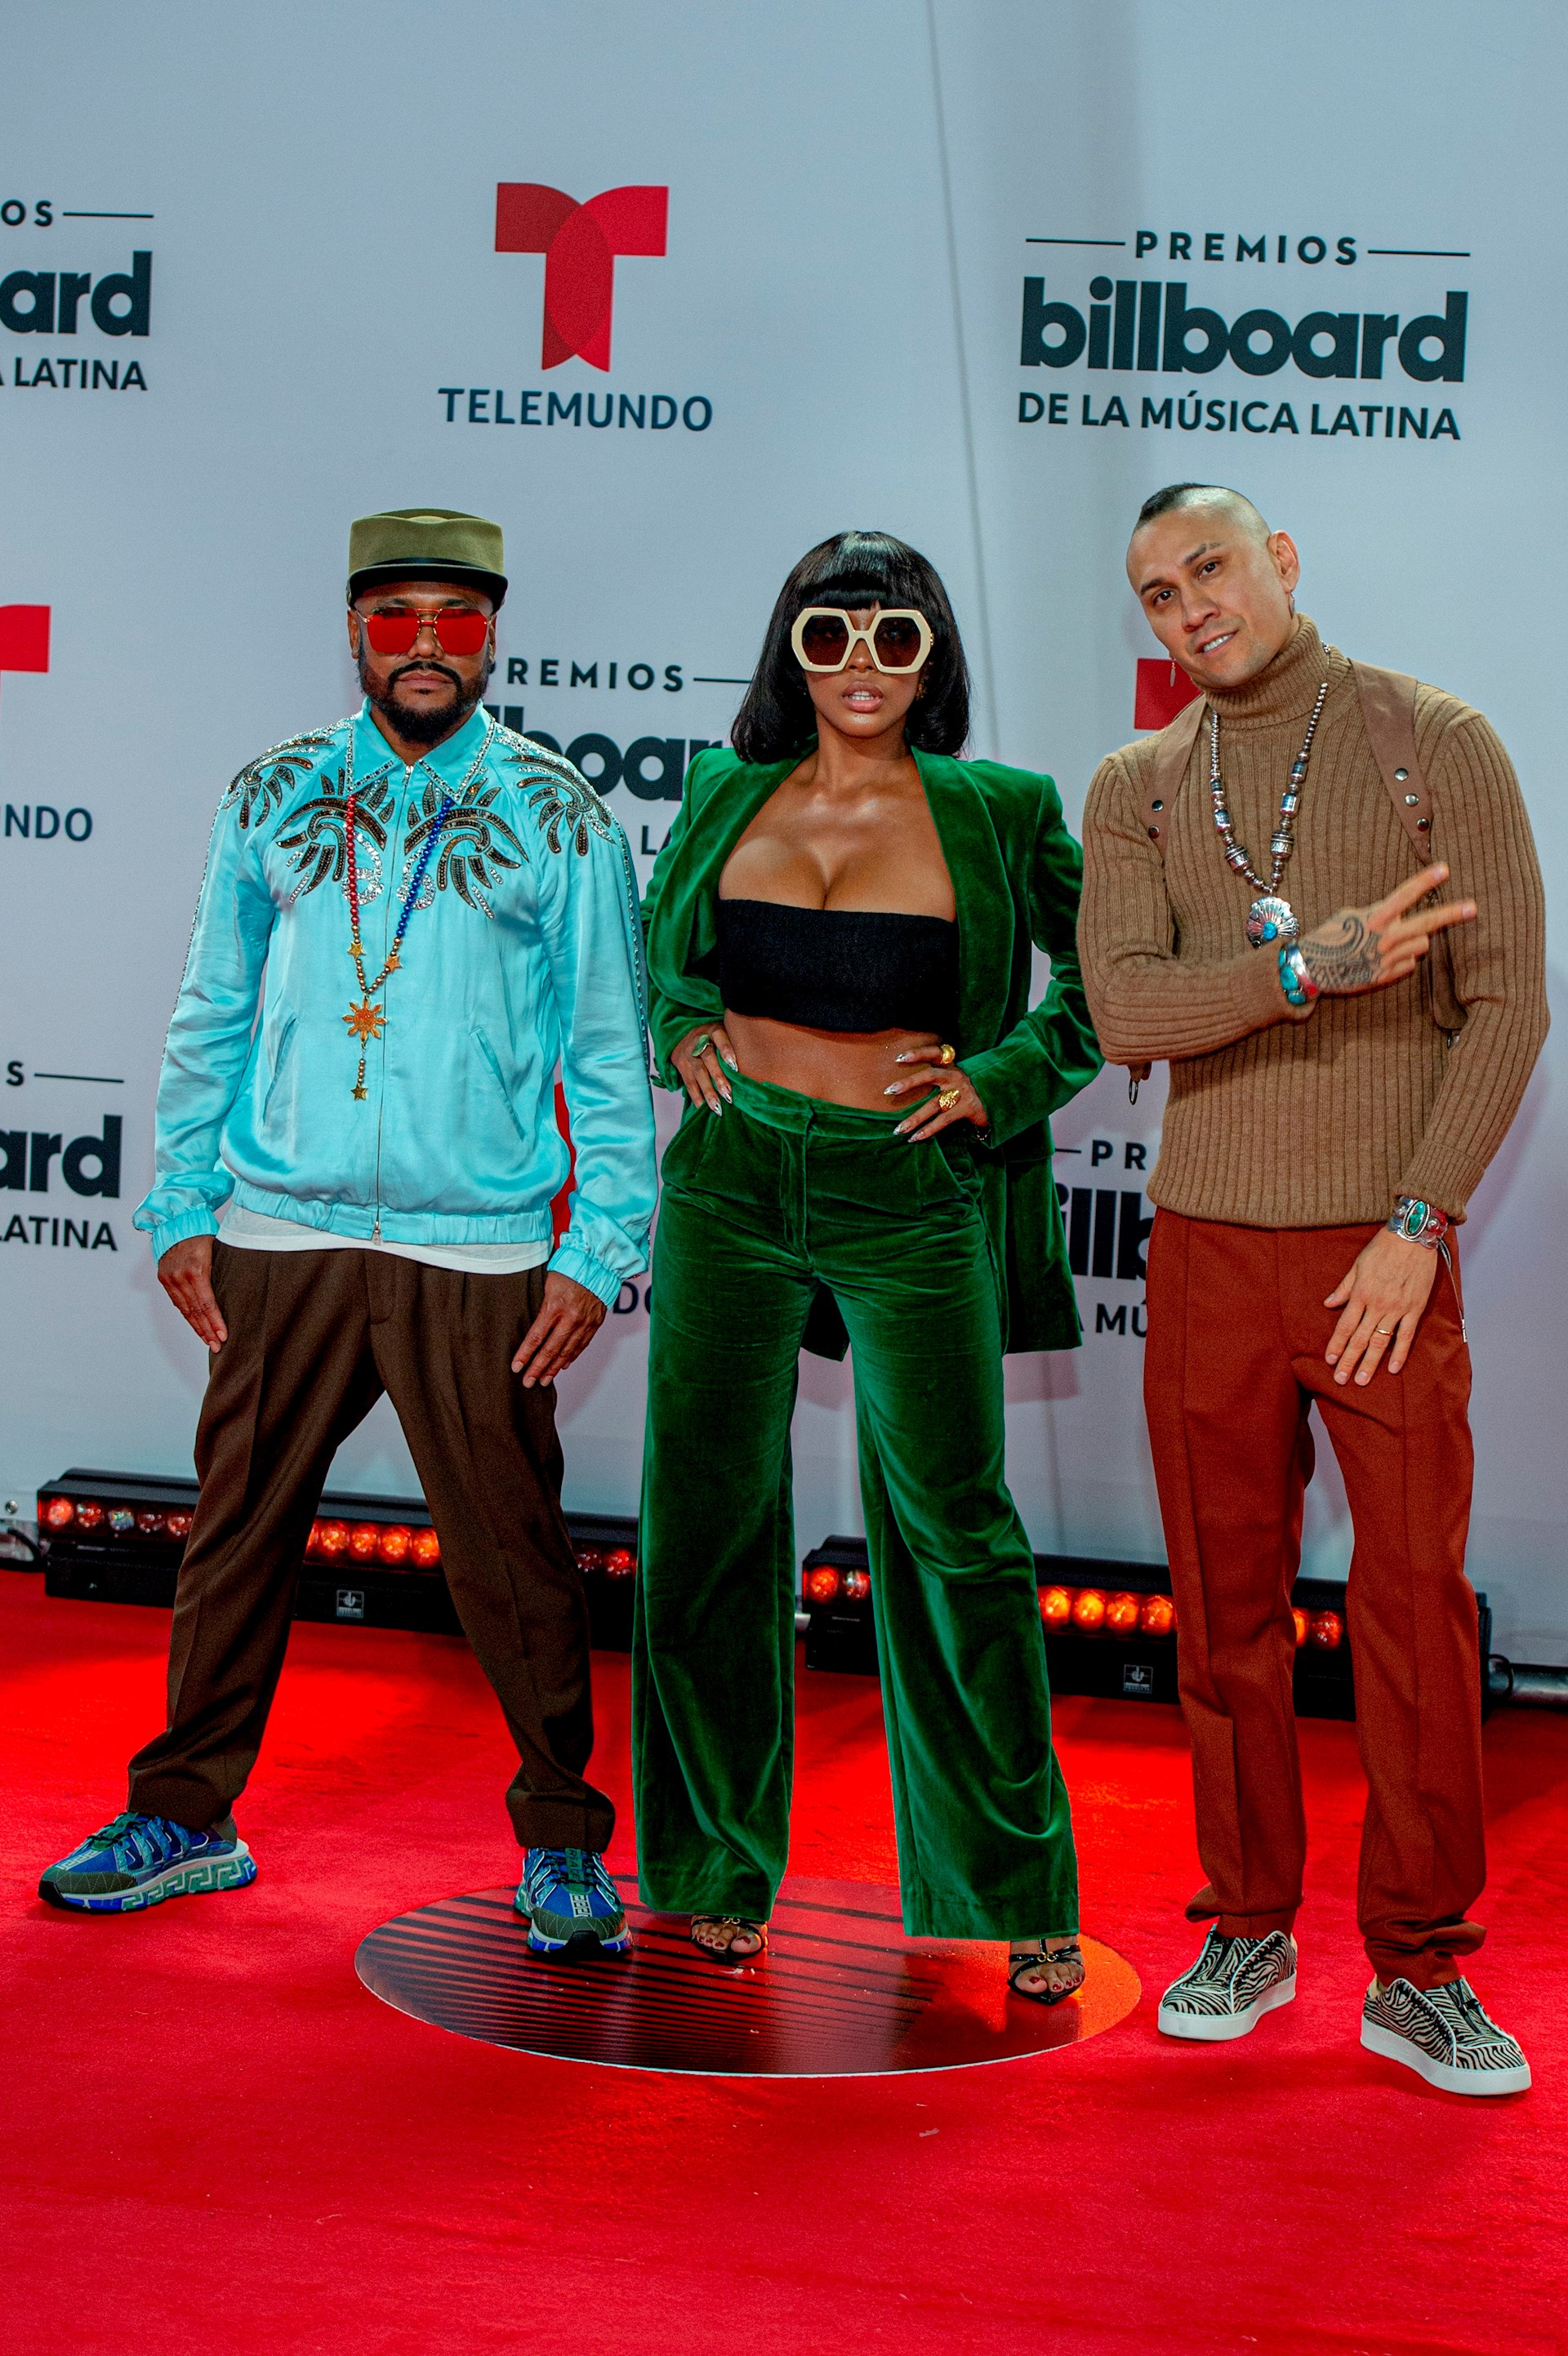 Los integrantes de la banda estadounidense de hip hop/pop, Black Eyed Peas (i-d), will.i.am, J. Rey Soul y Taboo